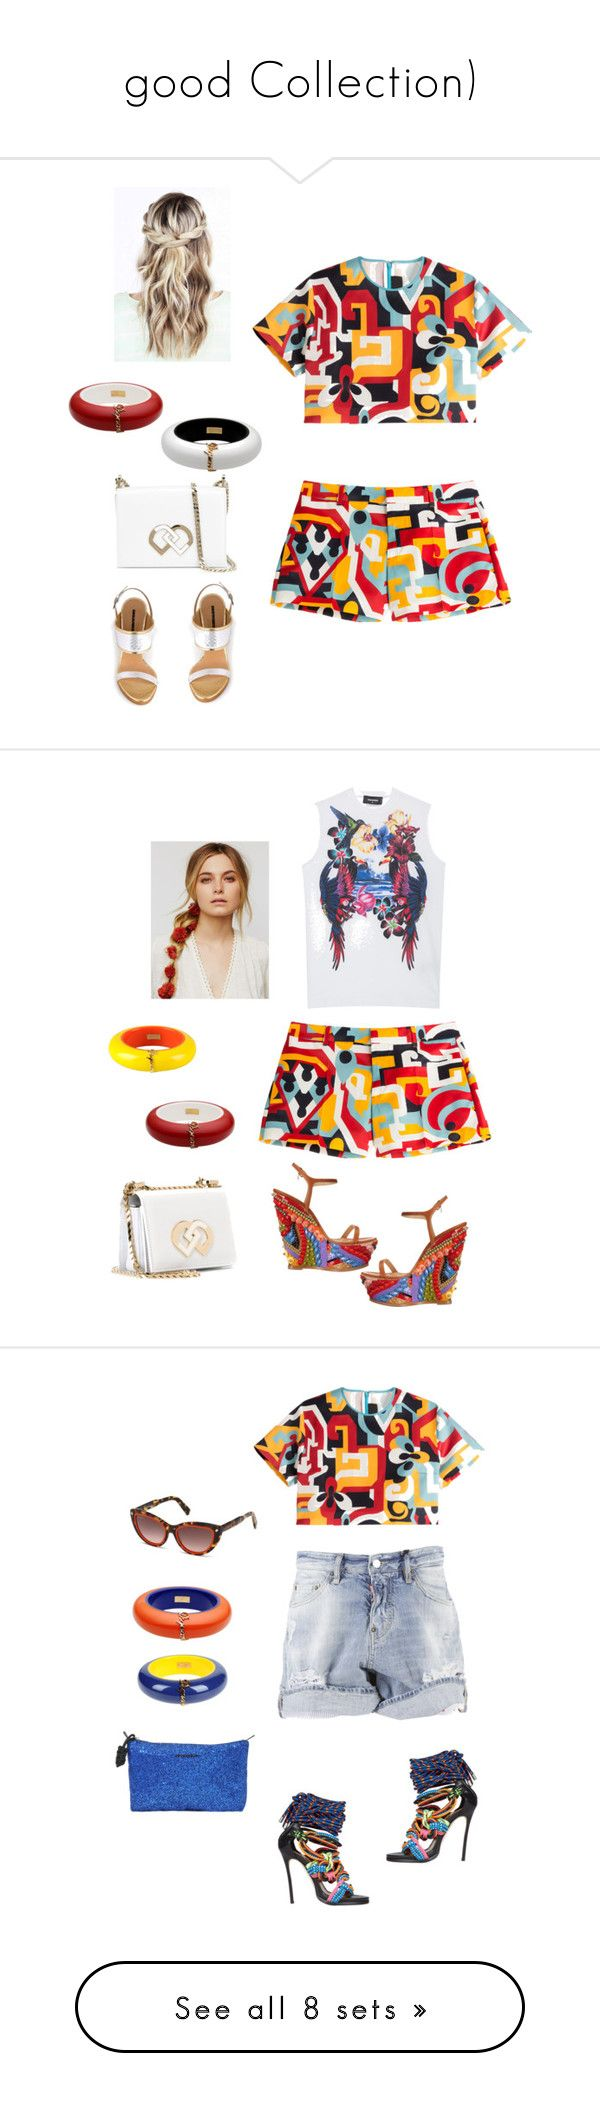 """""""good Collection)"""" by eshlychenko ❤ liked on Polyvore featuring beauty, Dsquared2, Free People, Chicwish, Faith Connexion, Topshop, Fendi, Stephanie Kantis, HIRSCHELL and DKNY"""